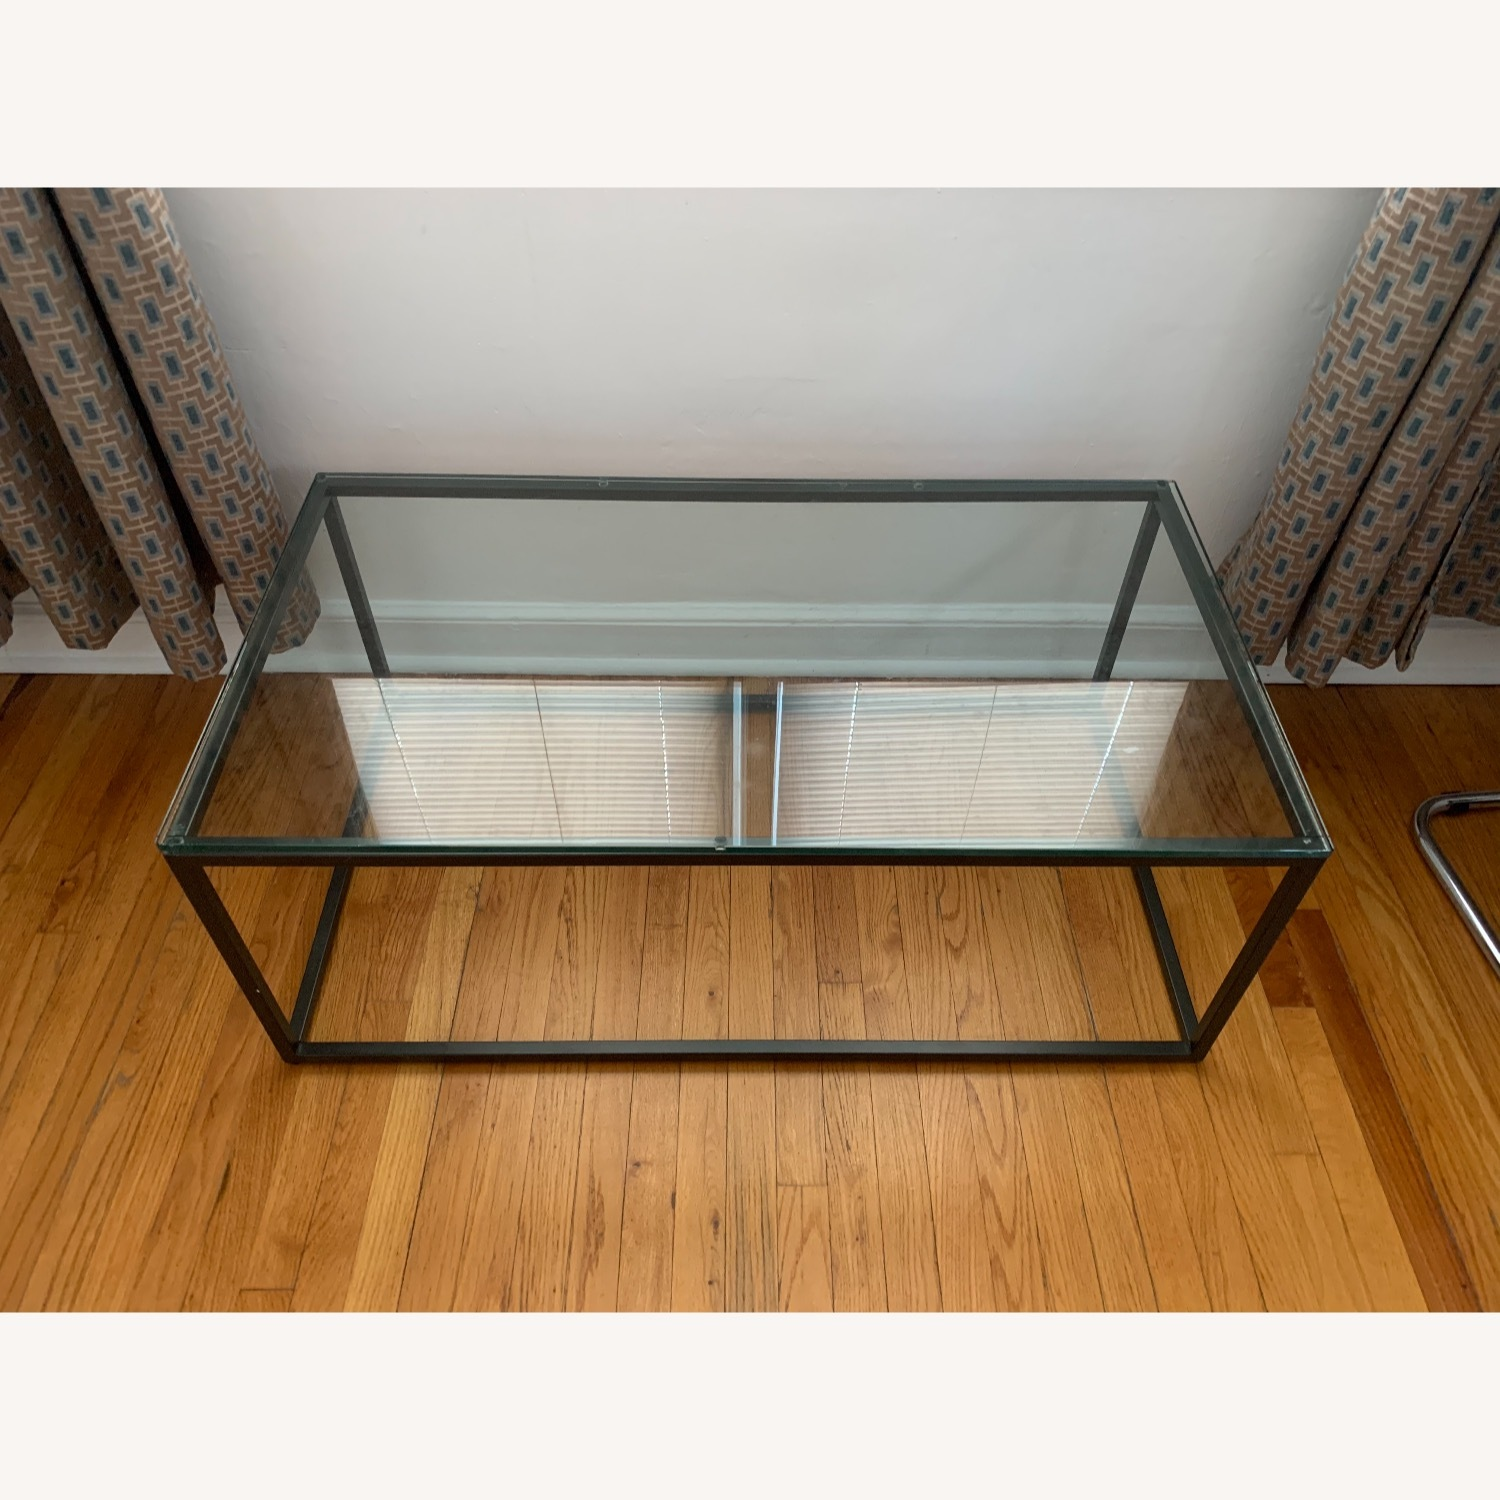 AllModern Metal Framed Glass Coffee Table - image-1